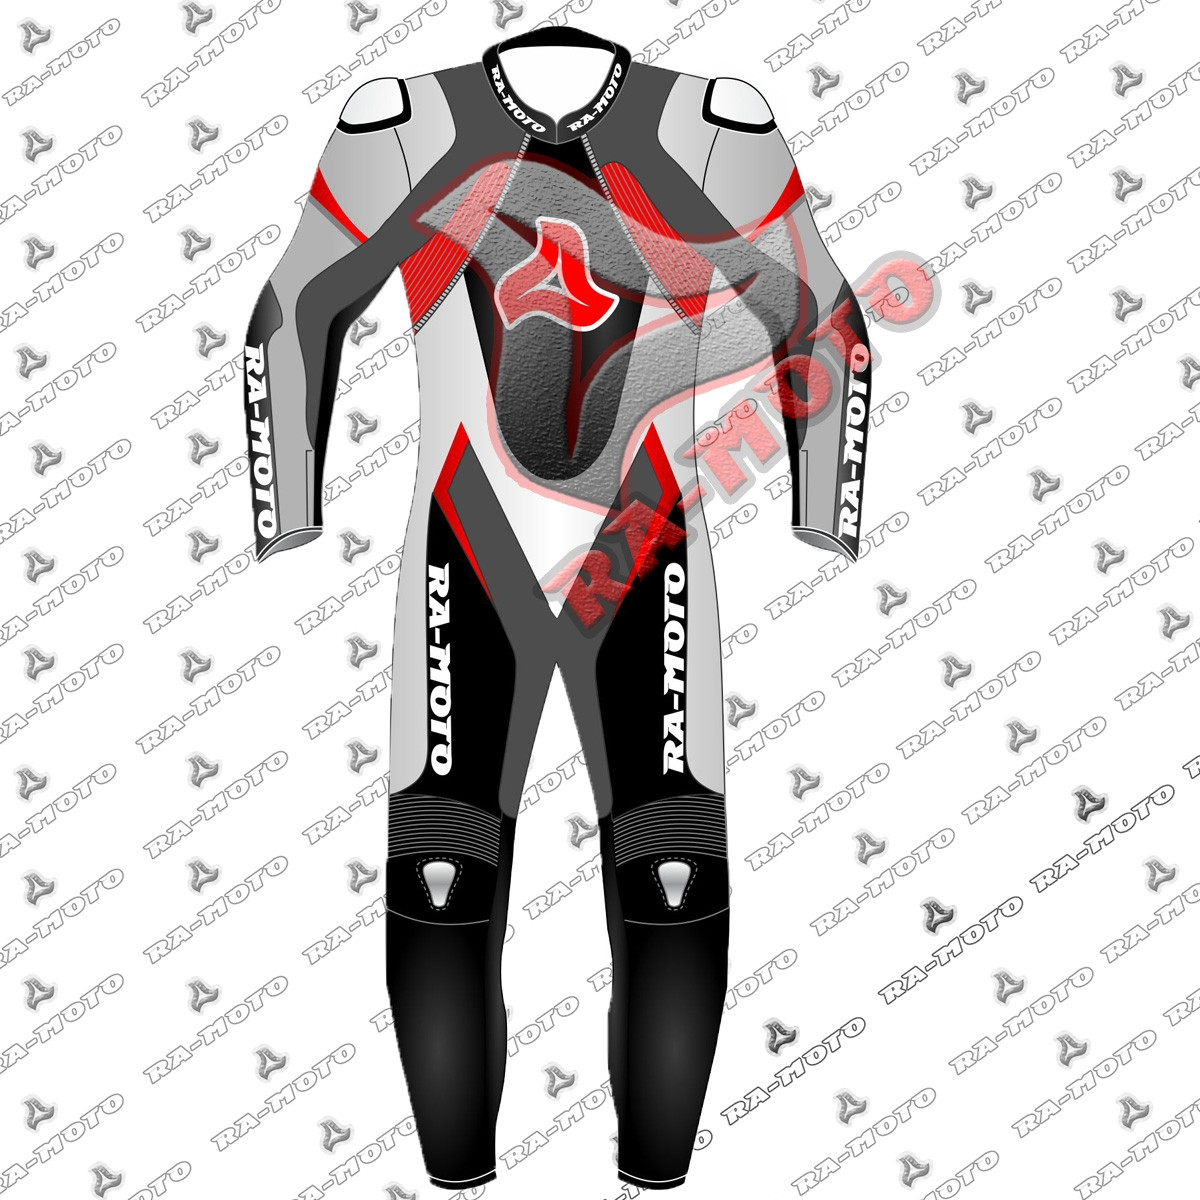 RA-15293 Fire SuperMoto leather racing suit